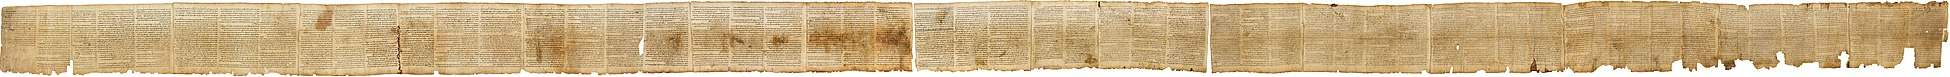 The Great Isaiah Scroll MS A (1QIsa) - Google Art Project.jpg